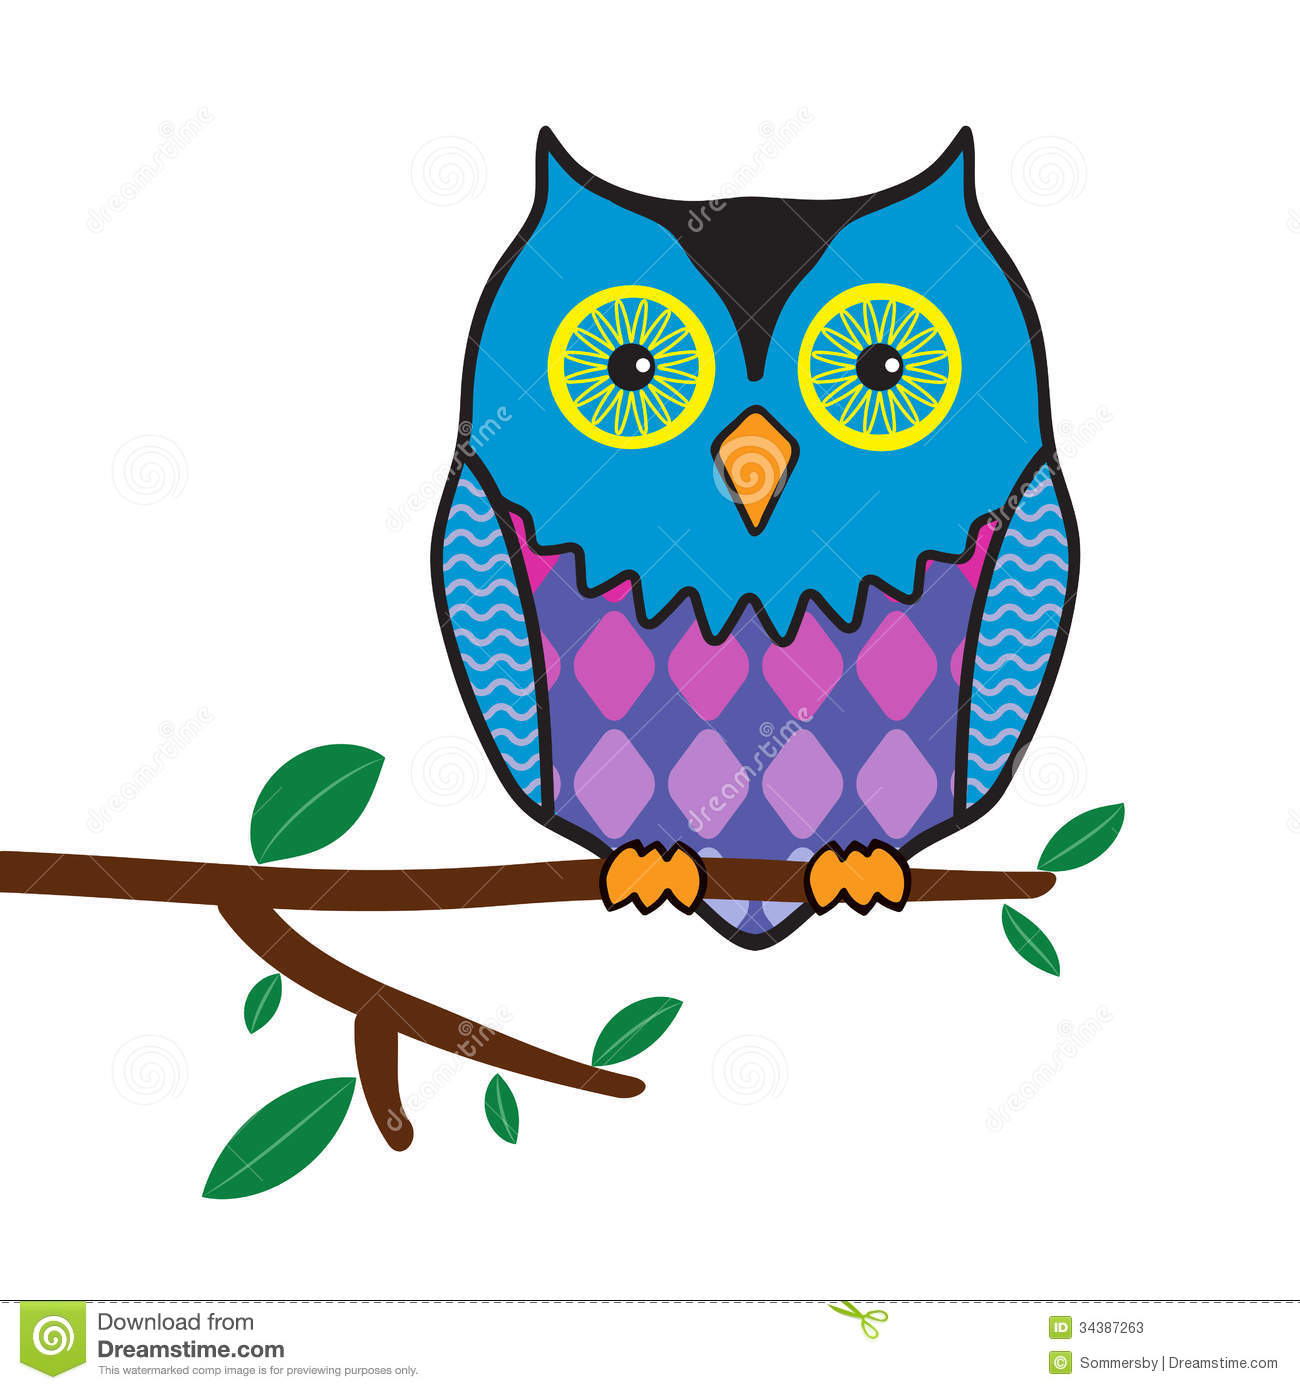 clip art family owls in trees clipart clipart suggest owl tree branch clip art Spider Clip Art